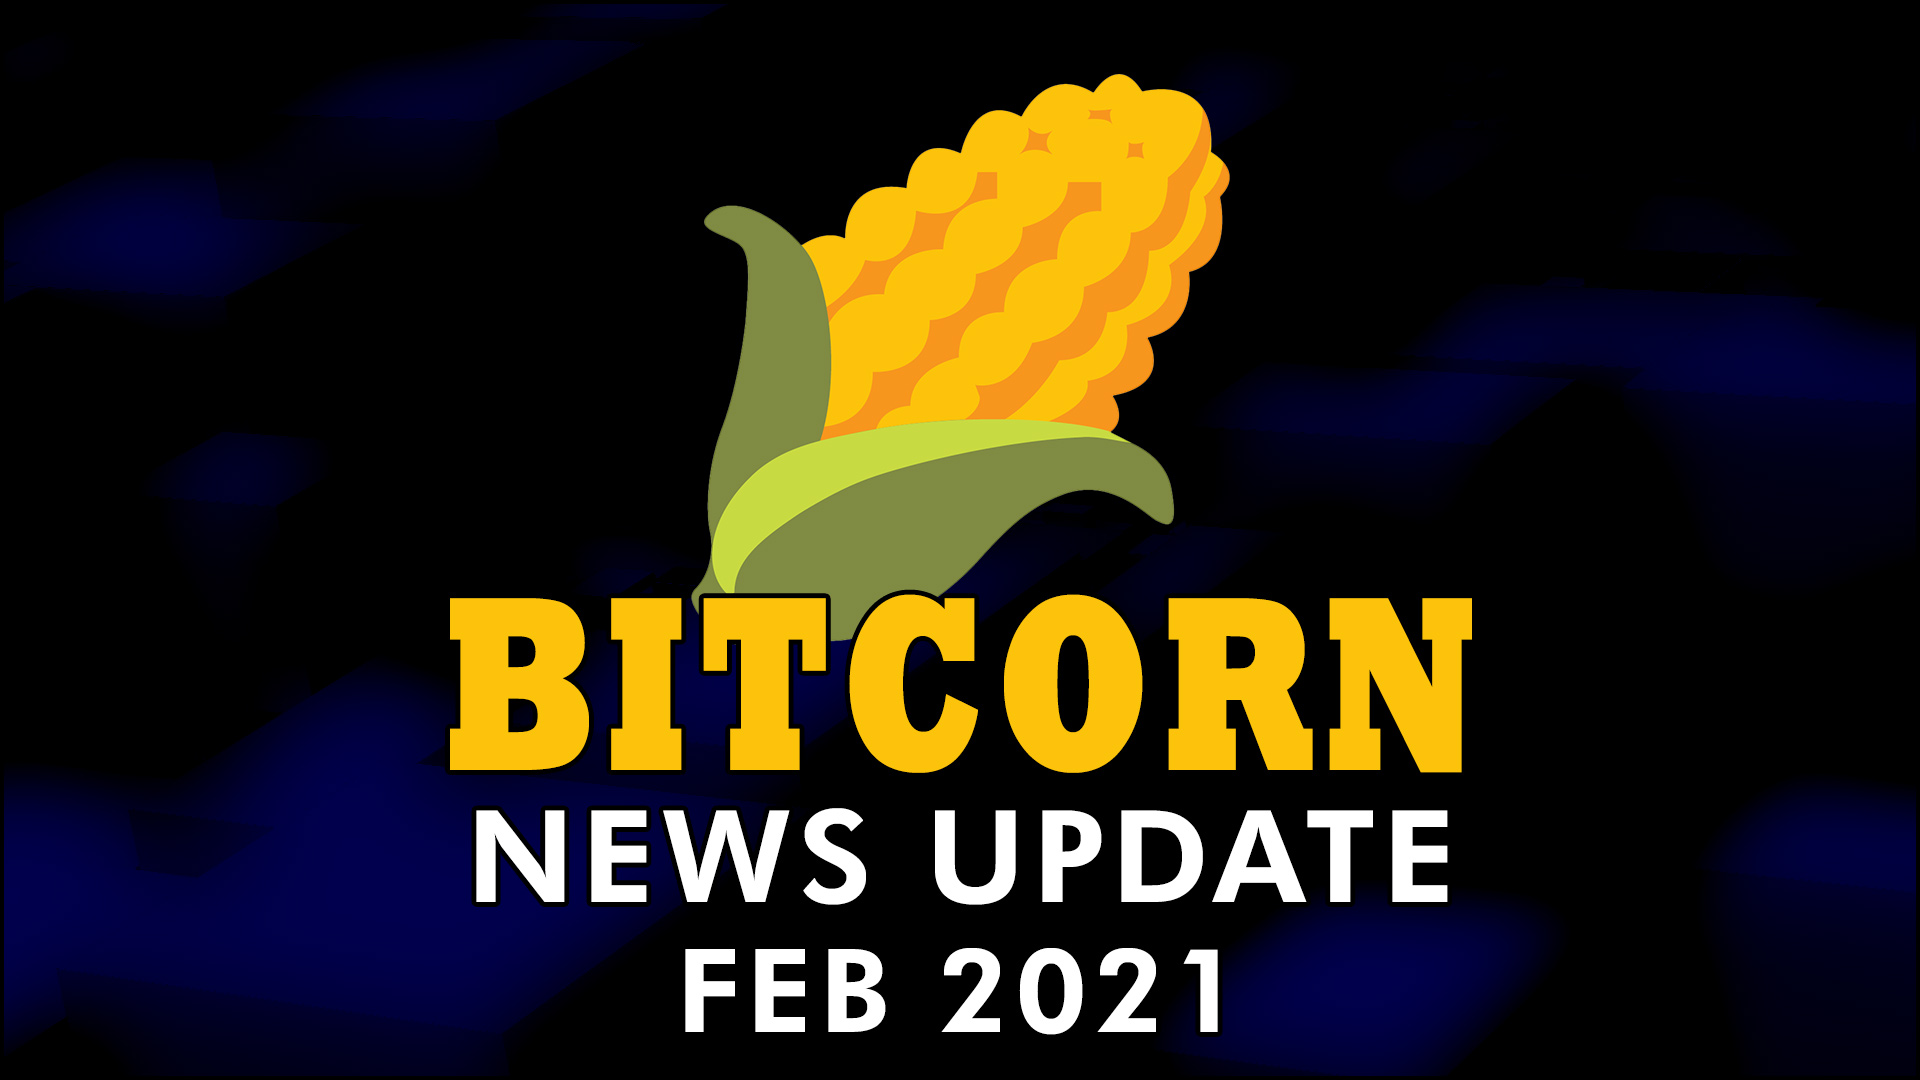 NEWS UPDATE Feb 2021